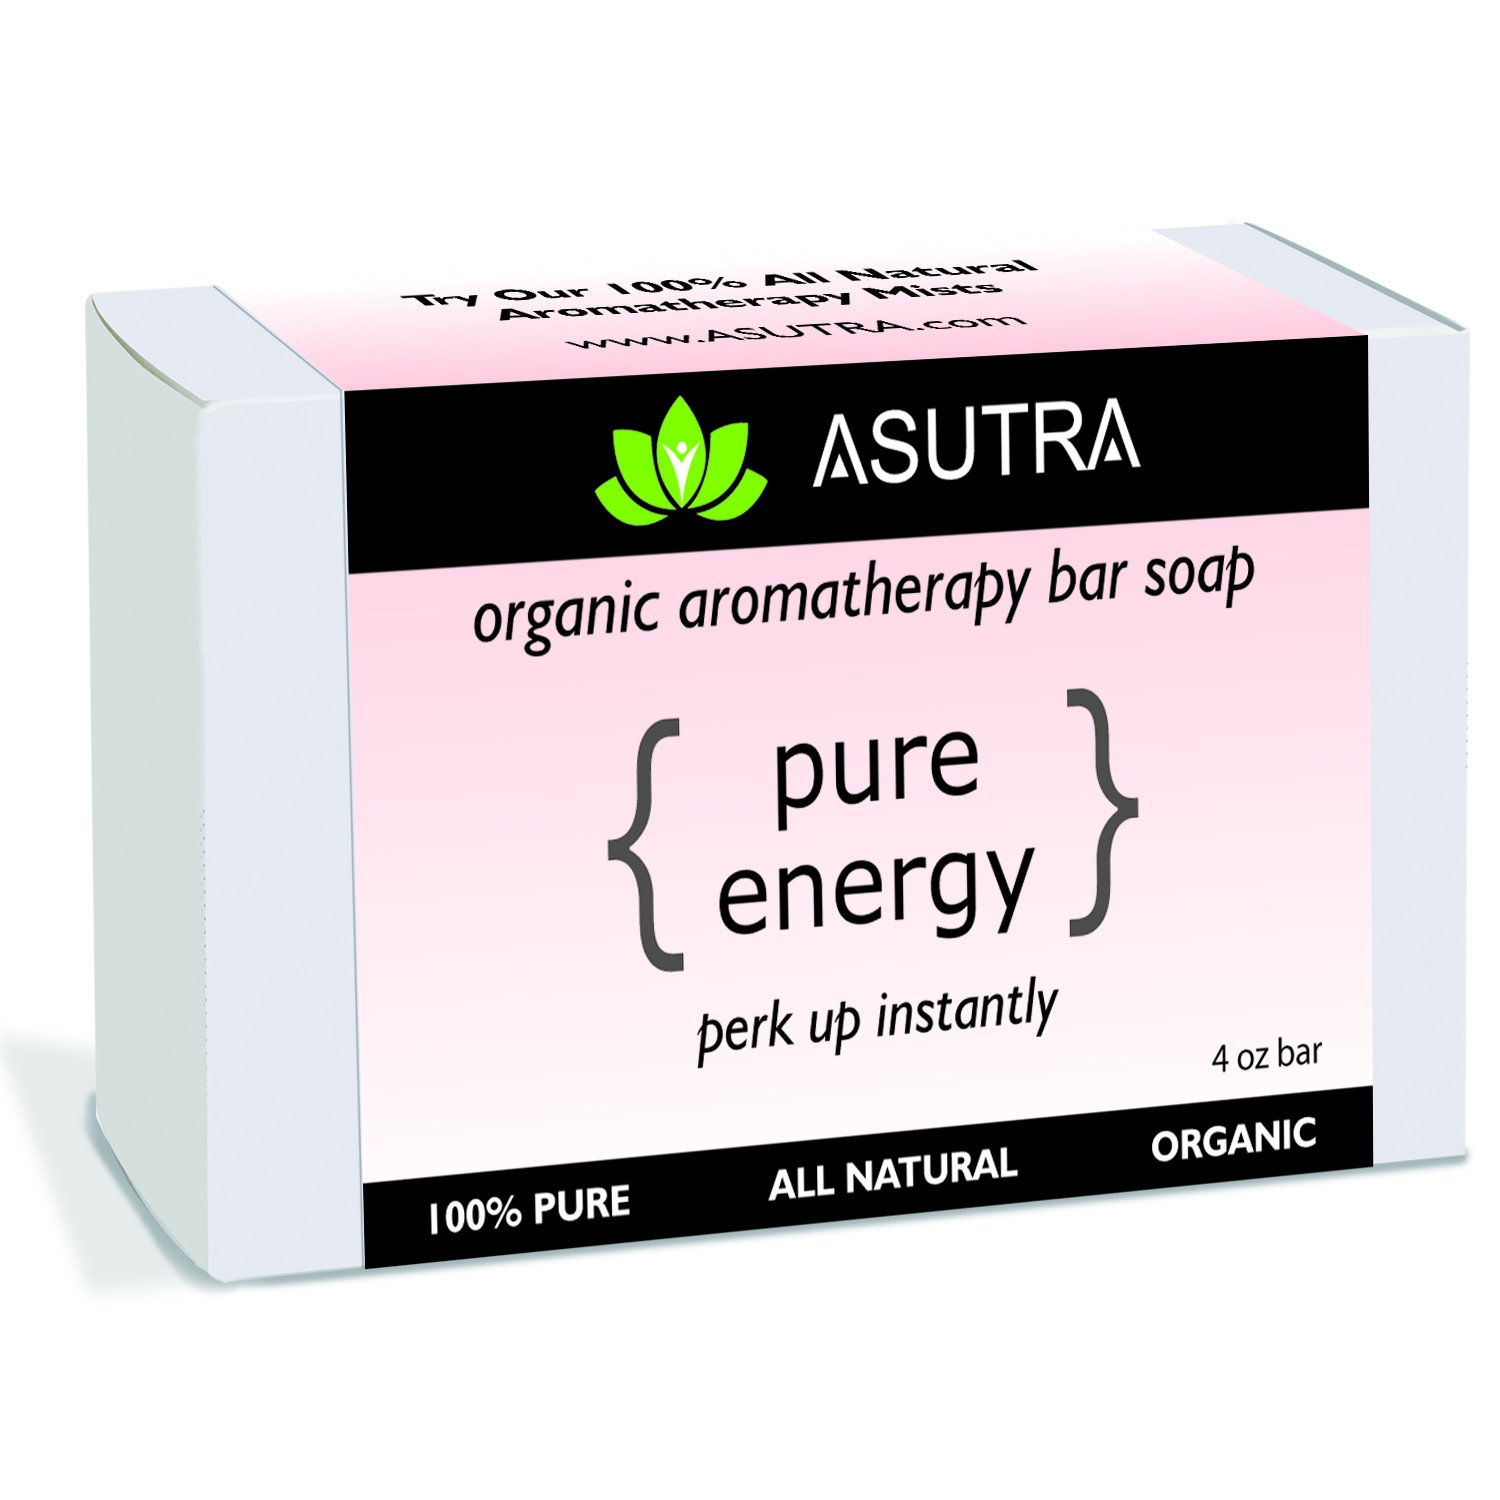 Amazon.com : ASUTRA Natural Organic Aromatherapy Bar Soap - PURE ...